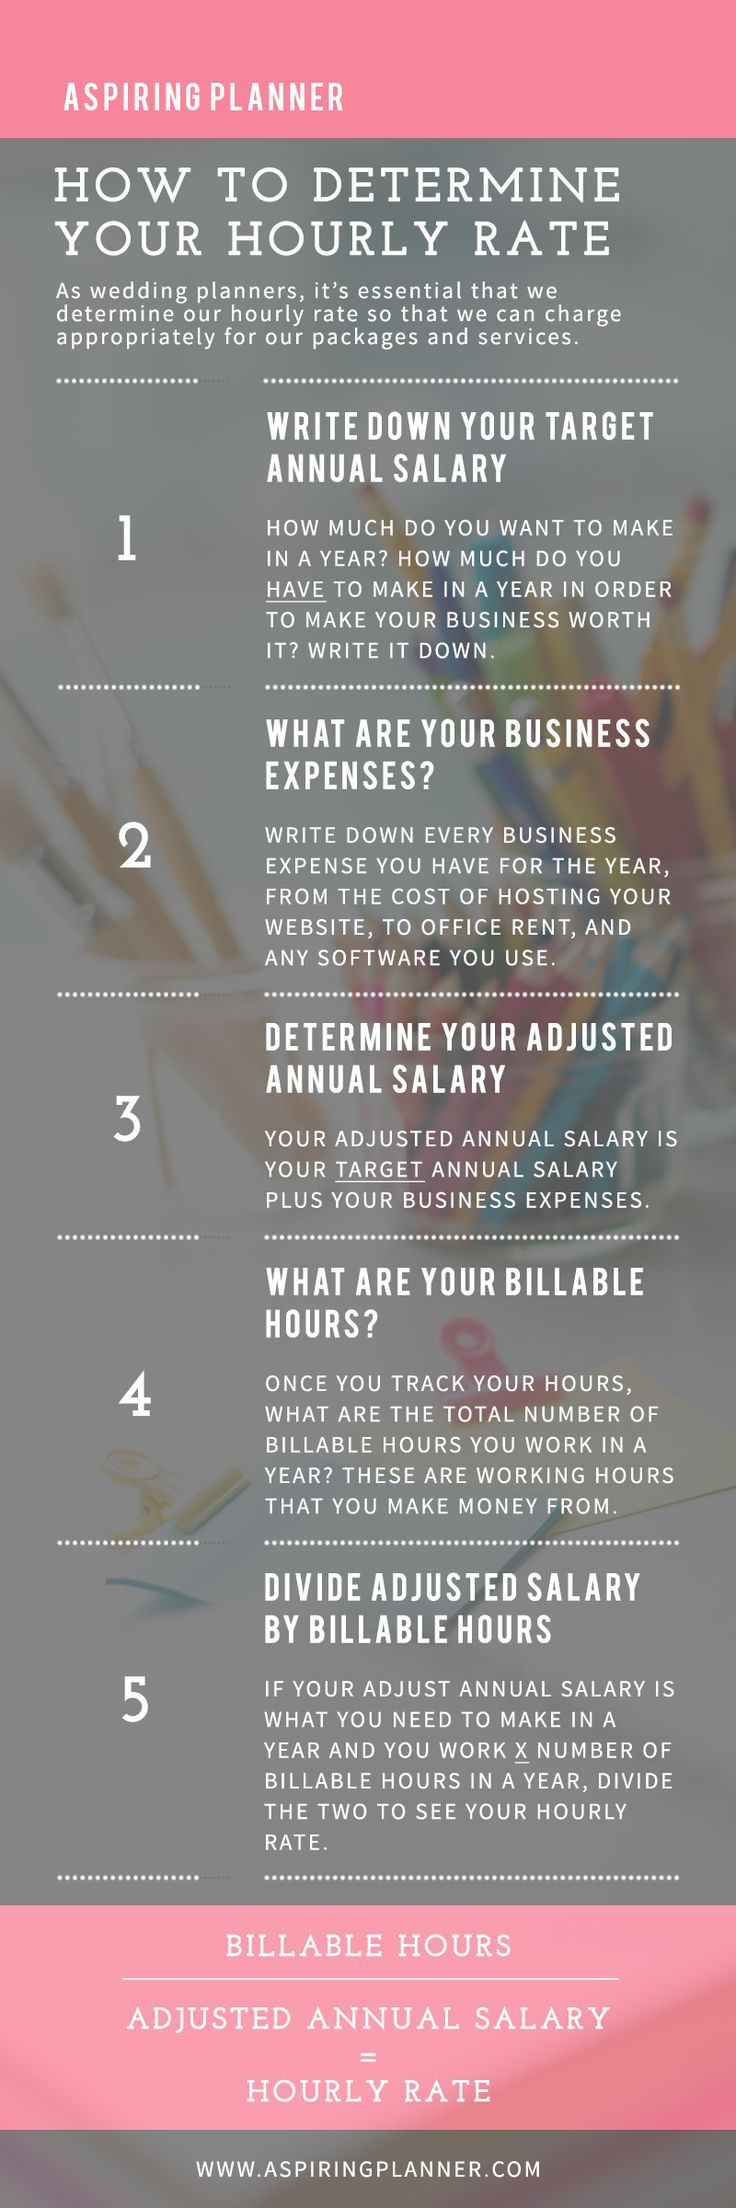 For Wedding Planners :: How to Price Your Wedding Services and Determine Your Hourly Rate | http://www.aspiringplanner.com